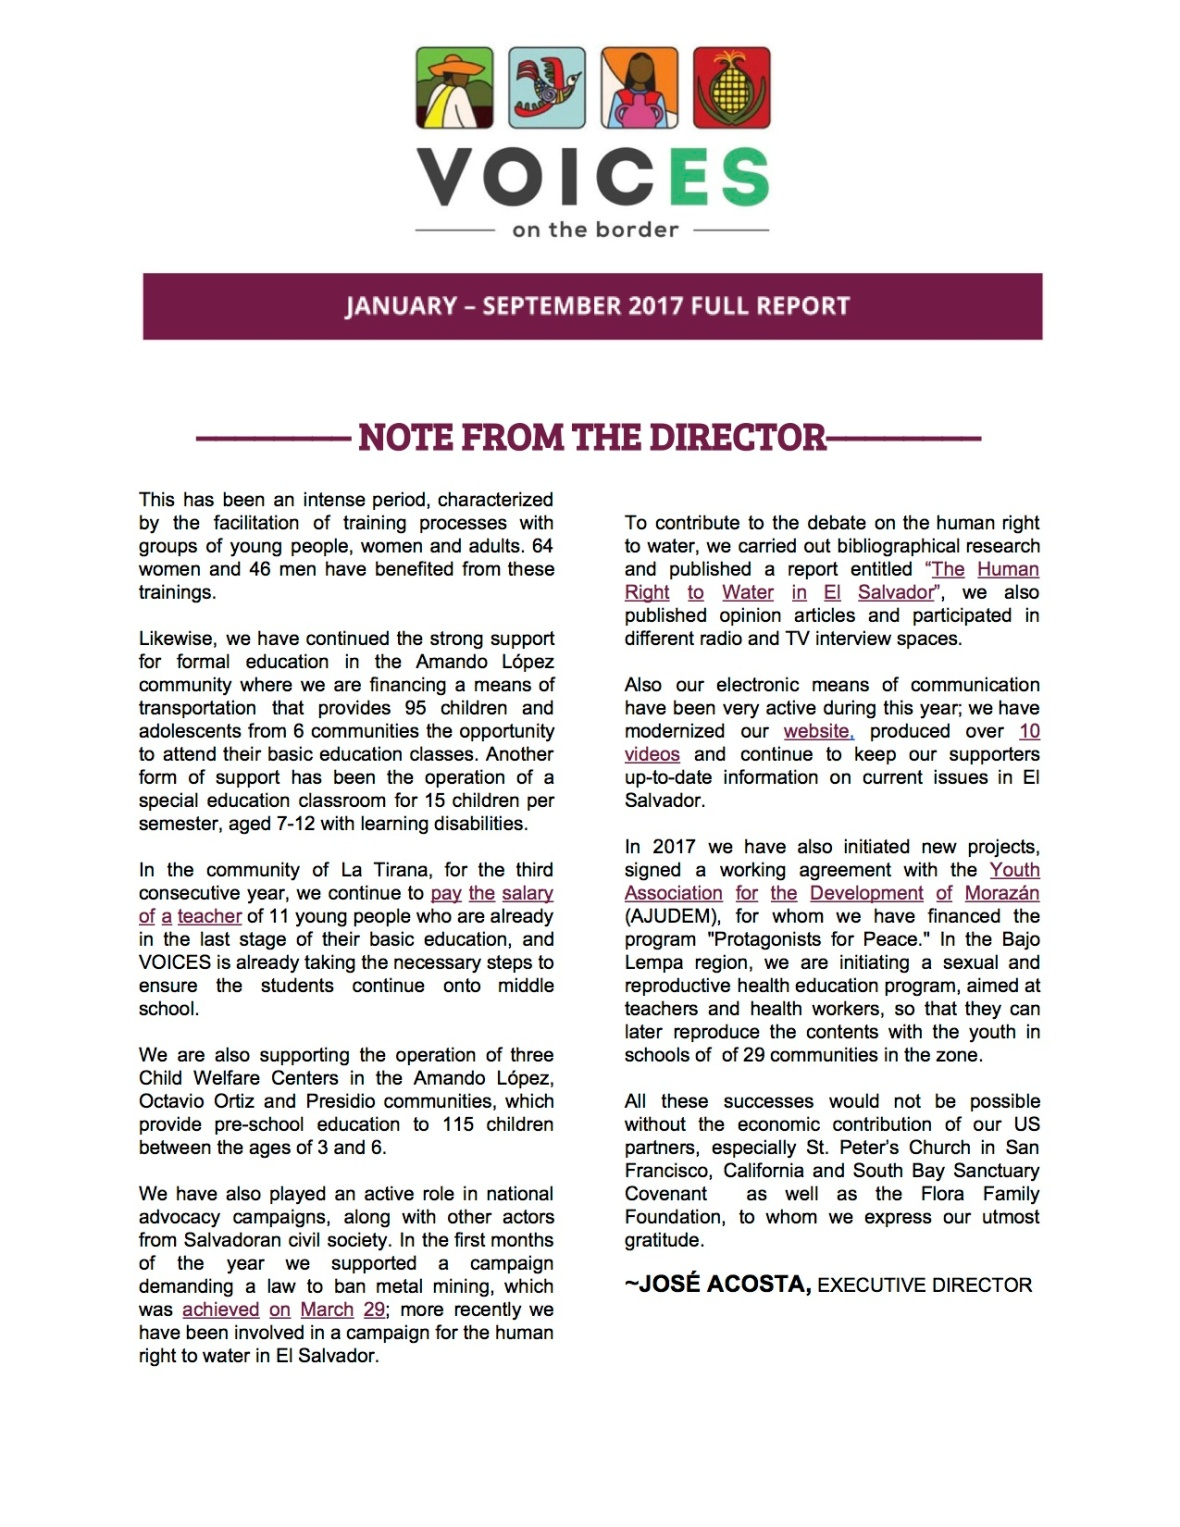 VOTB_ Full Report 2017_02page